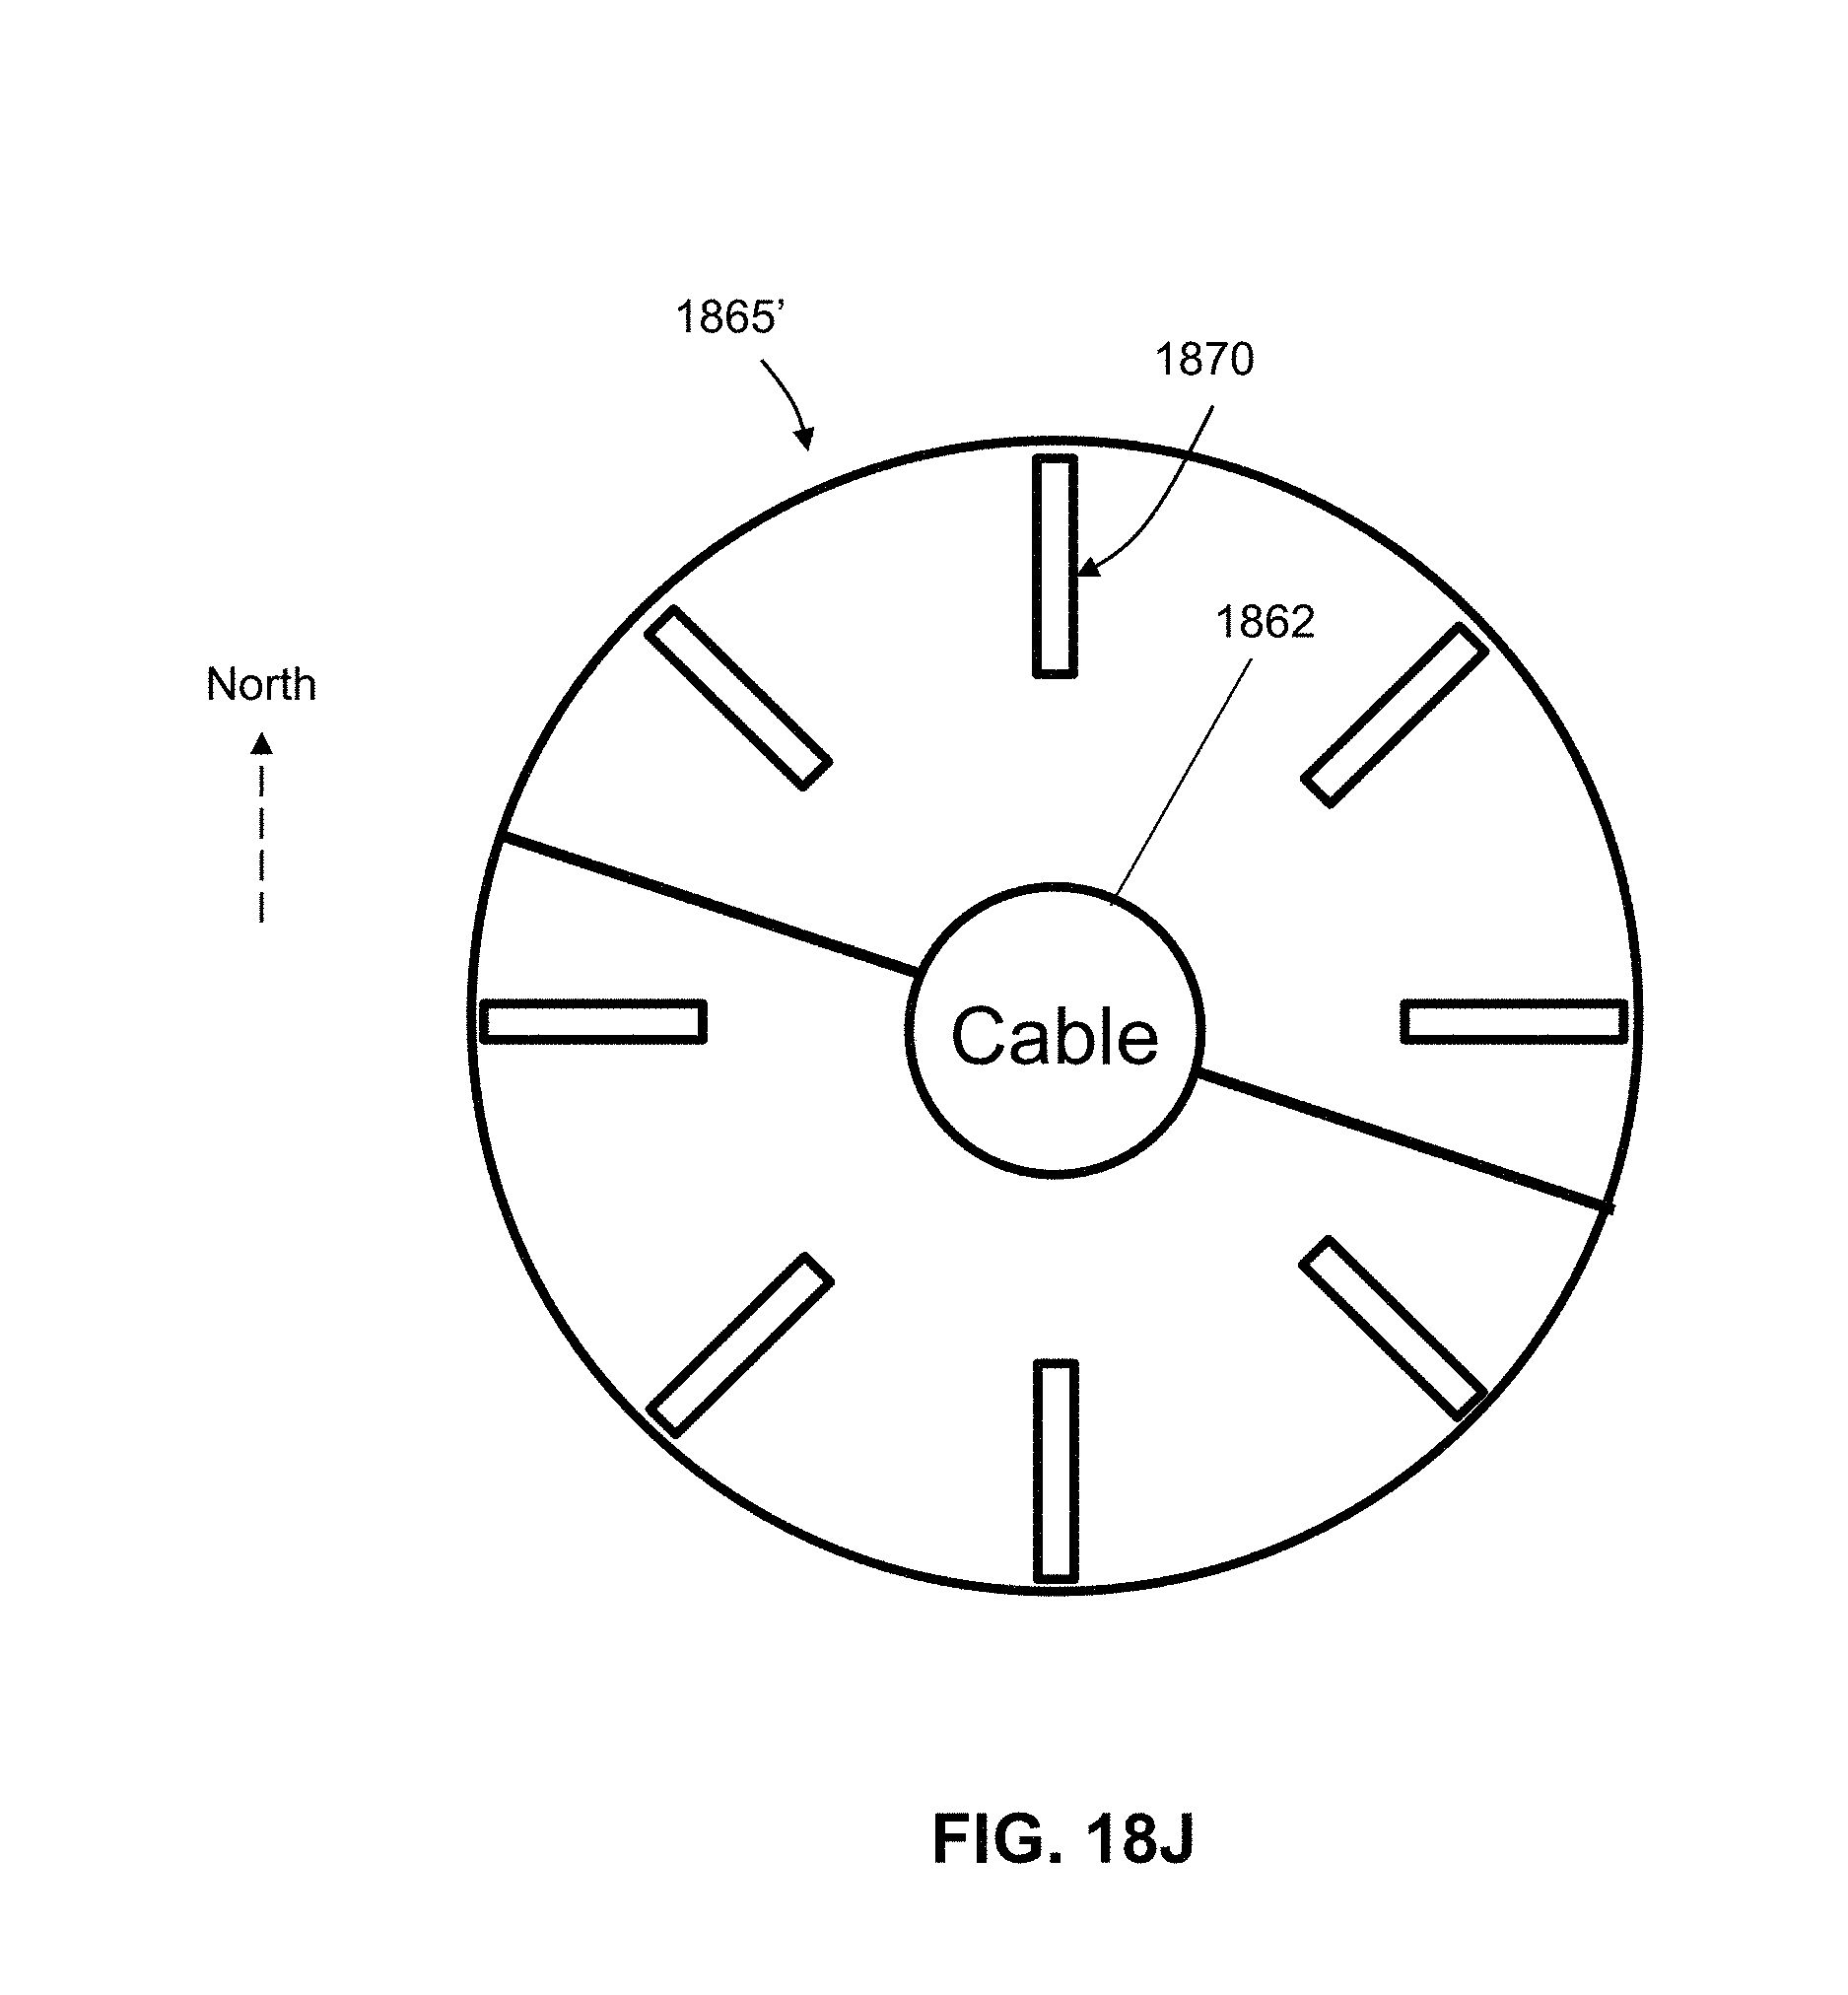 us9838896b1 method and apparatus for assessing network coverage Grounded Delta Electrical Systems us9838896b1 method and apparatus for assessing network coverage patents